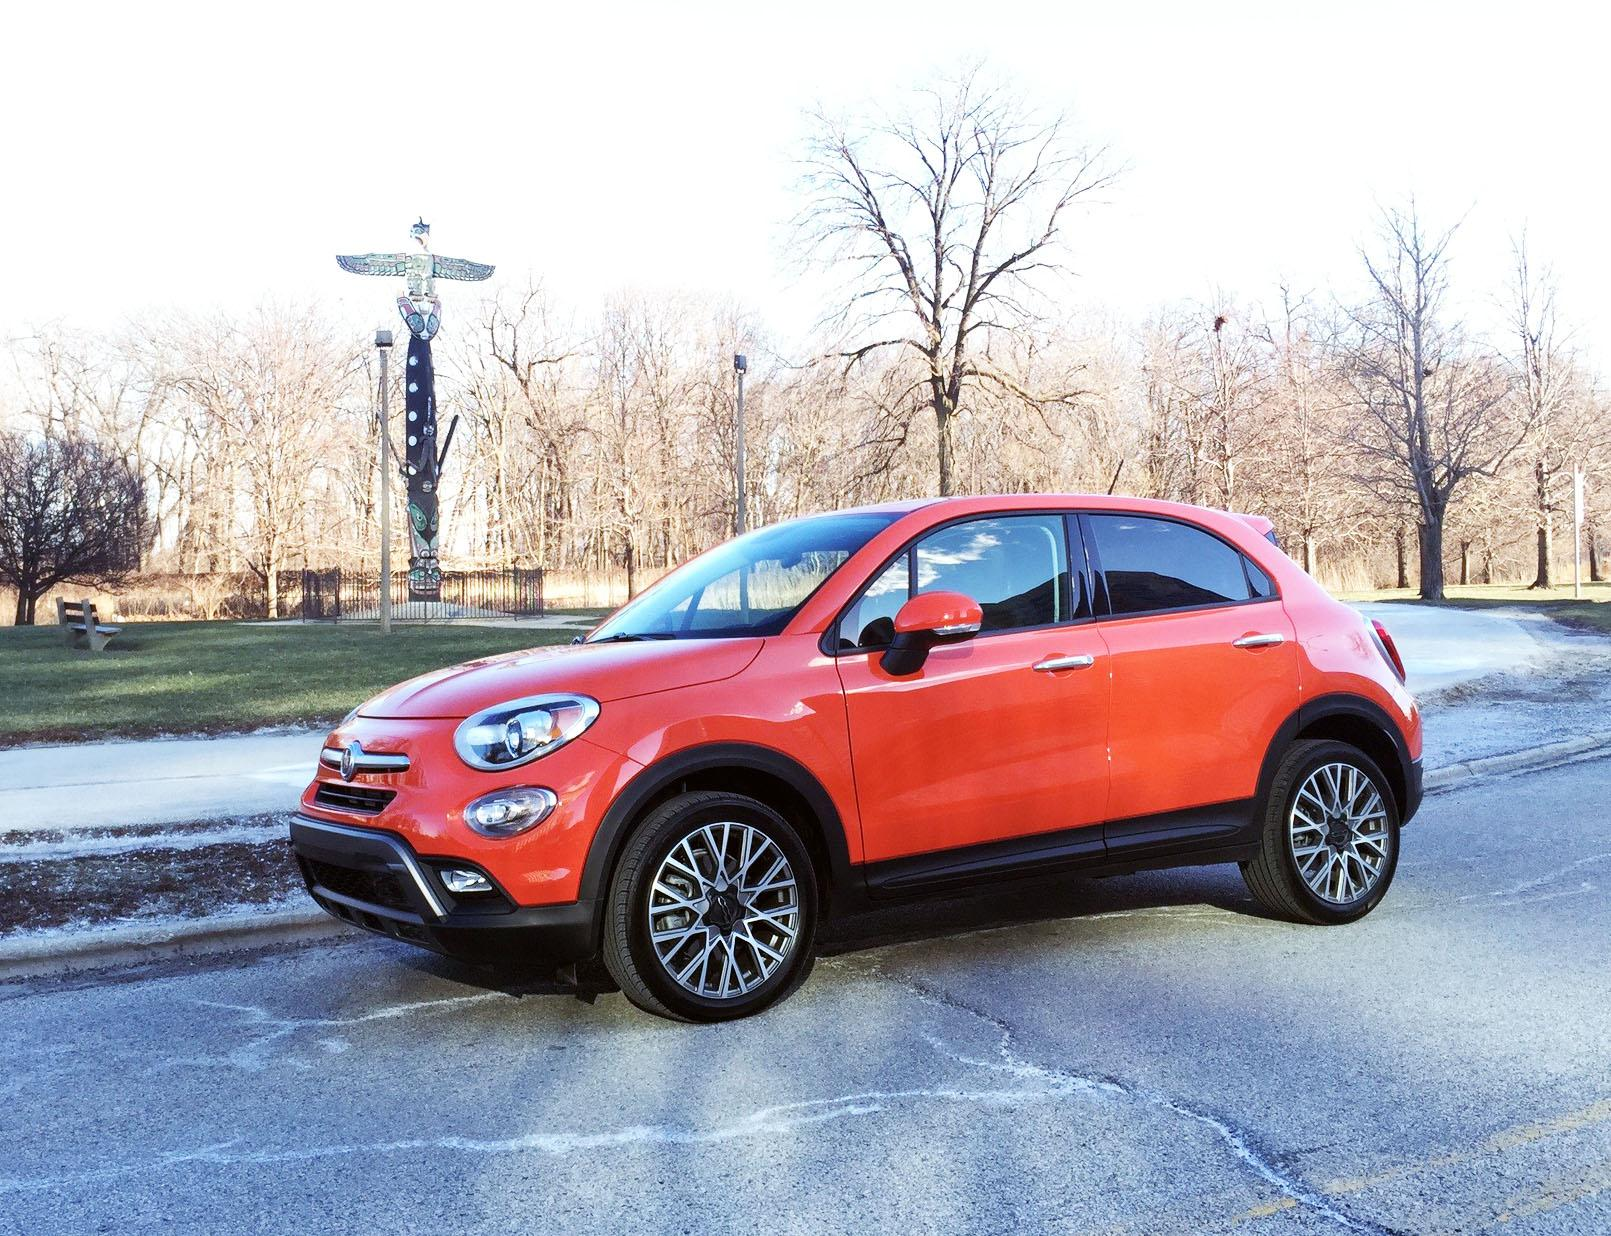 2016 fiat 500x the cute compact crossover kmtr. Black Bedroom Furniture Sets. Home Design Ideas